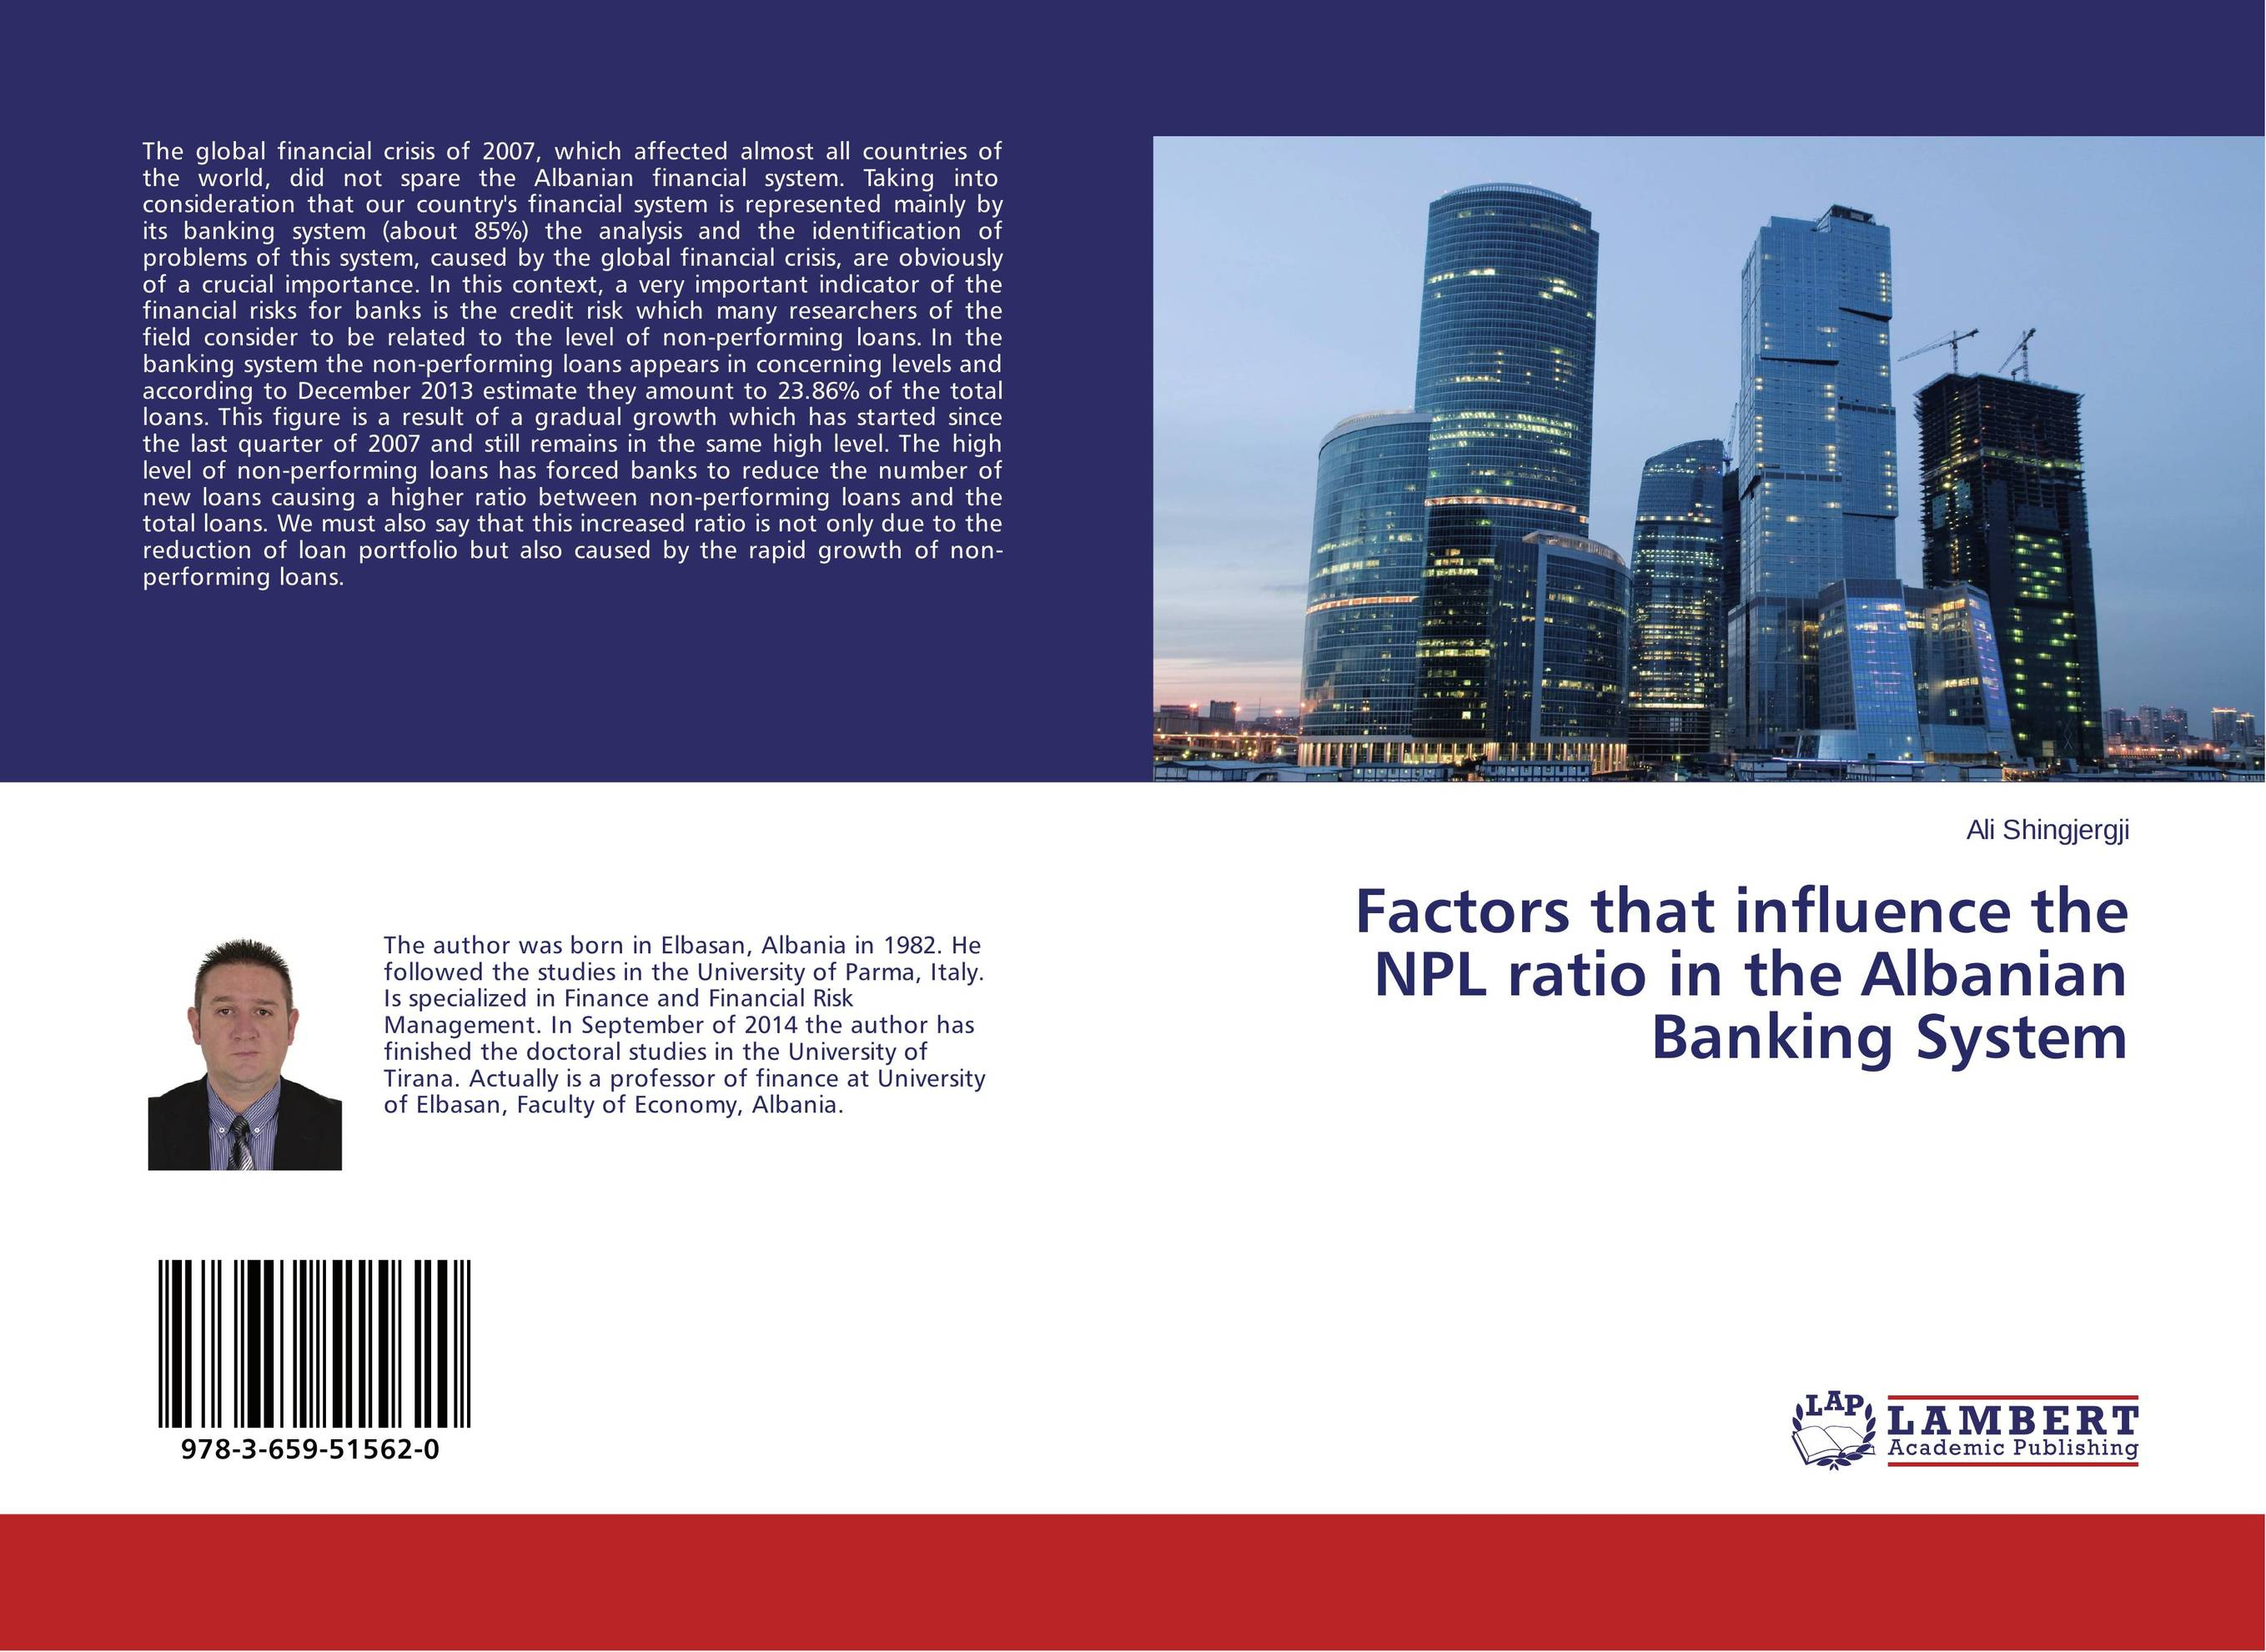 Factors that influence the NPL ratio in the Albanian Banking System npl p 43 37 купить